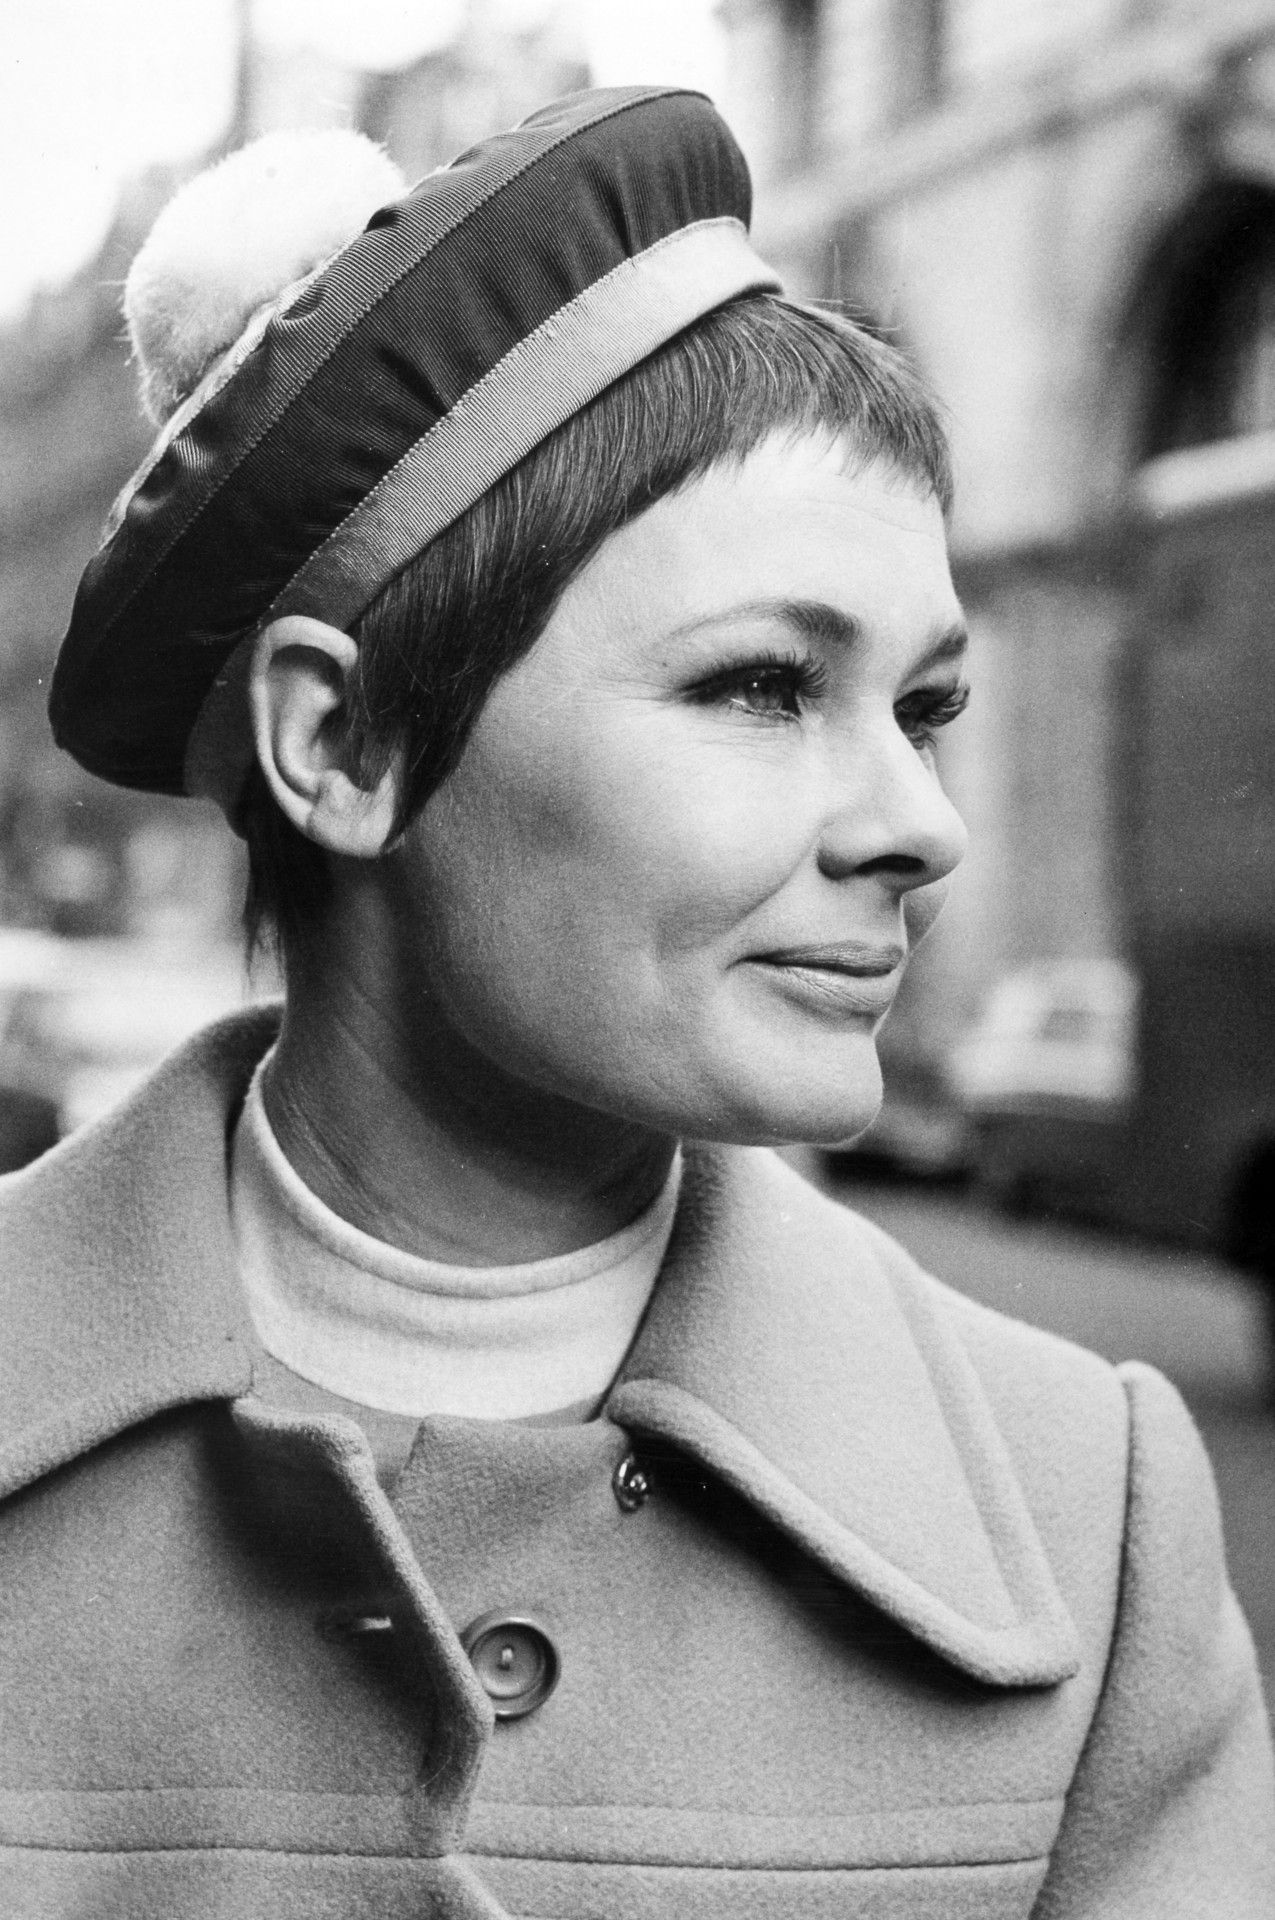 Judi Dench (born 1934)